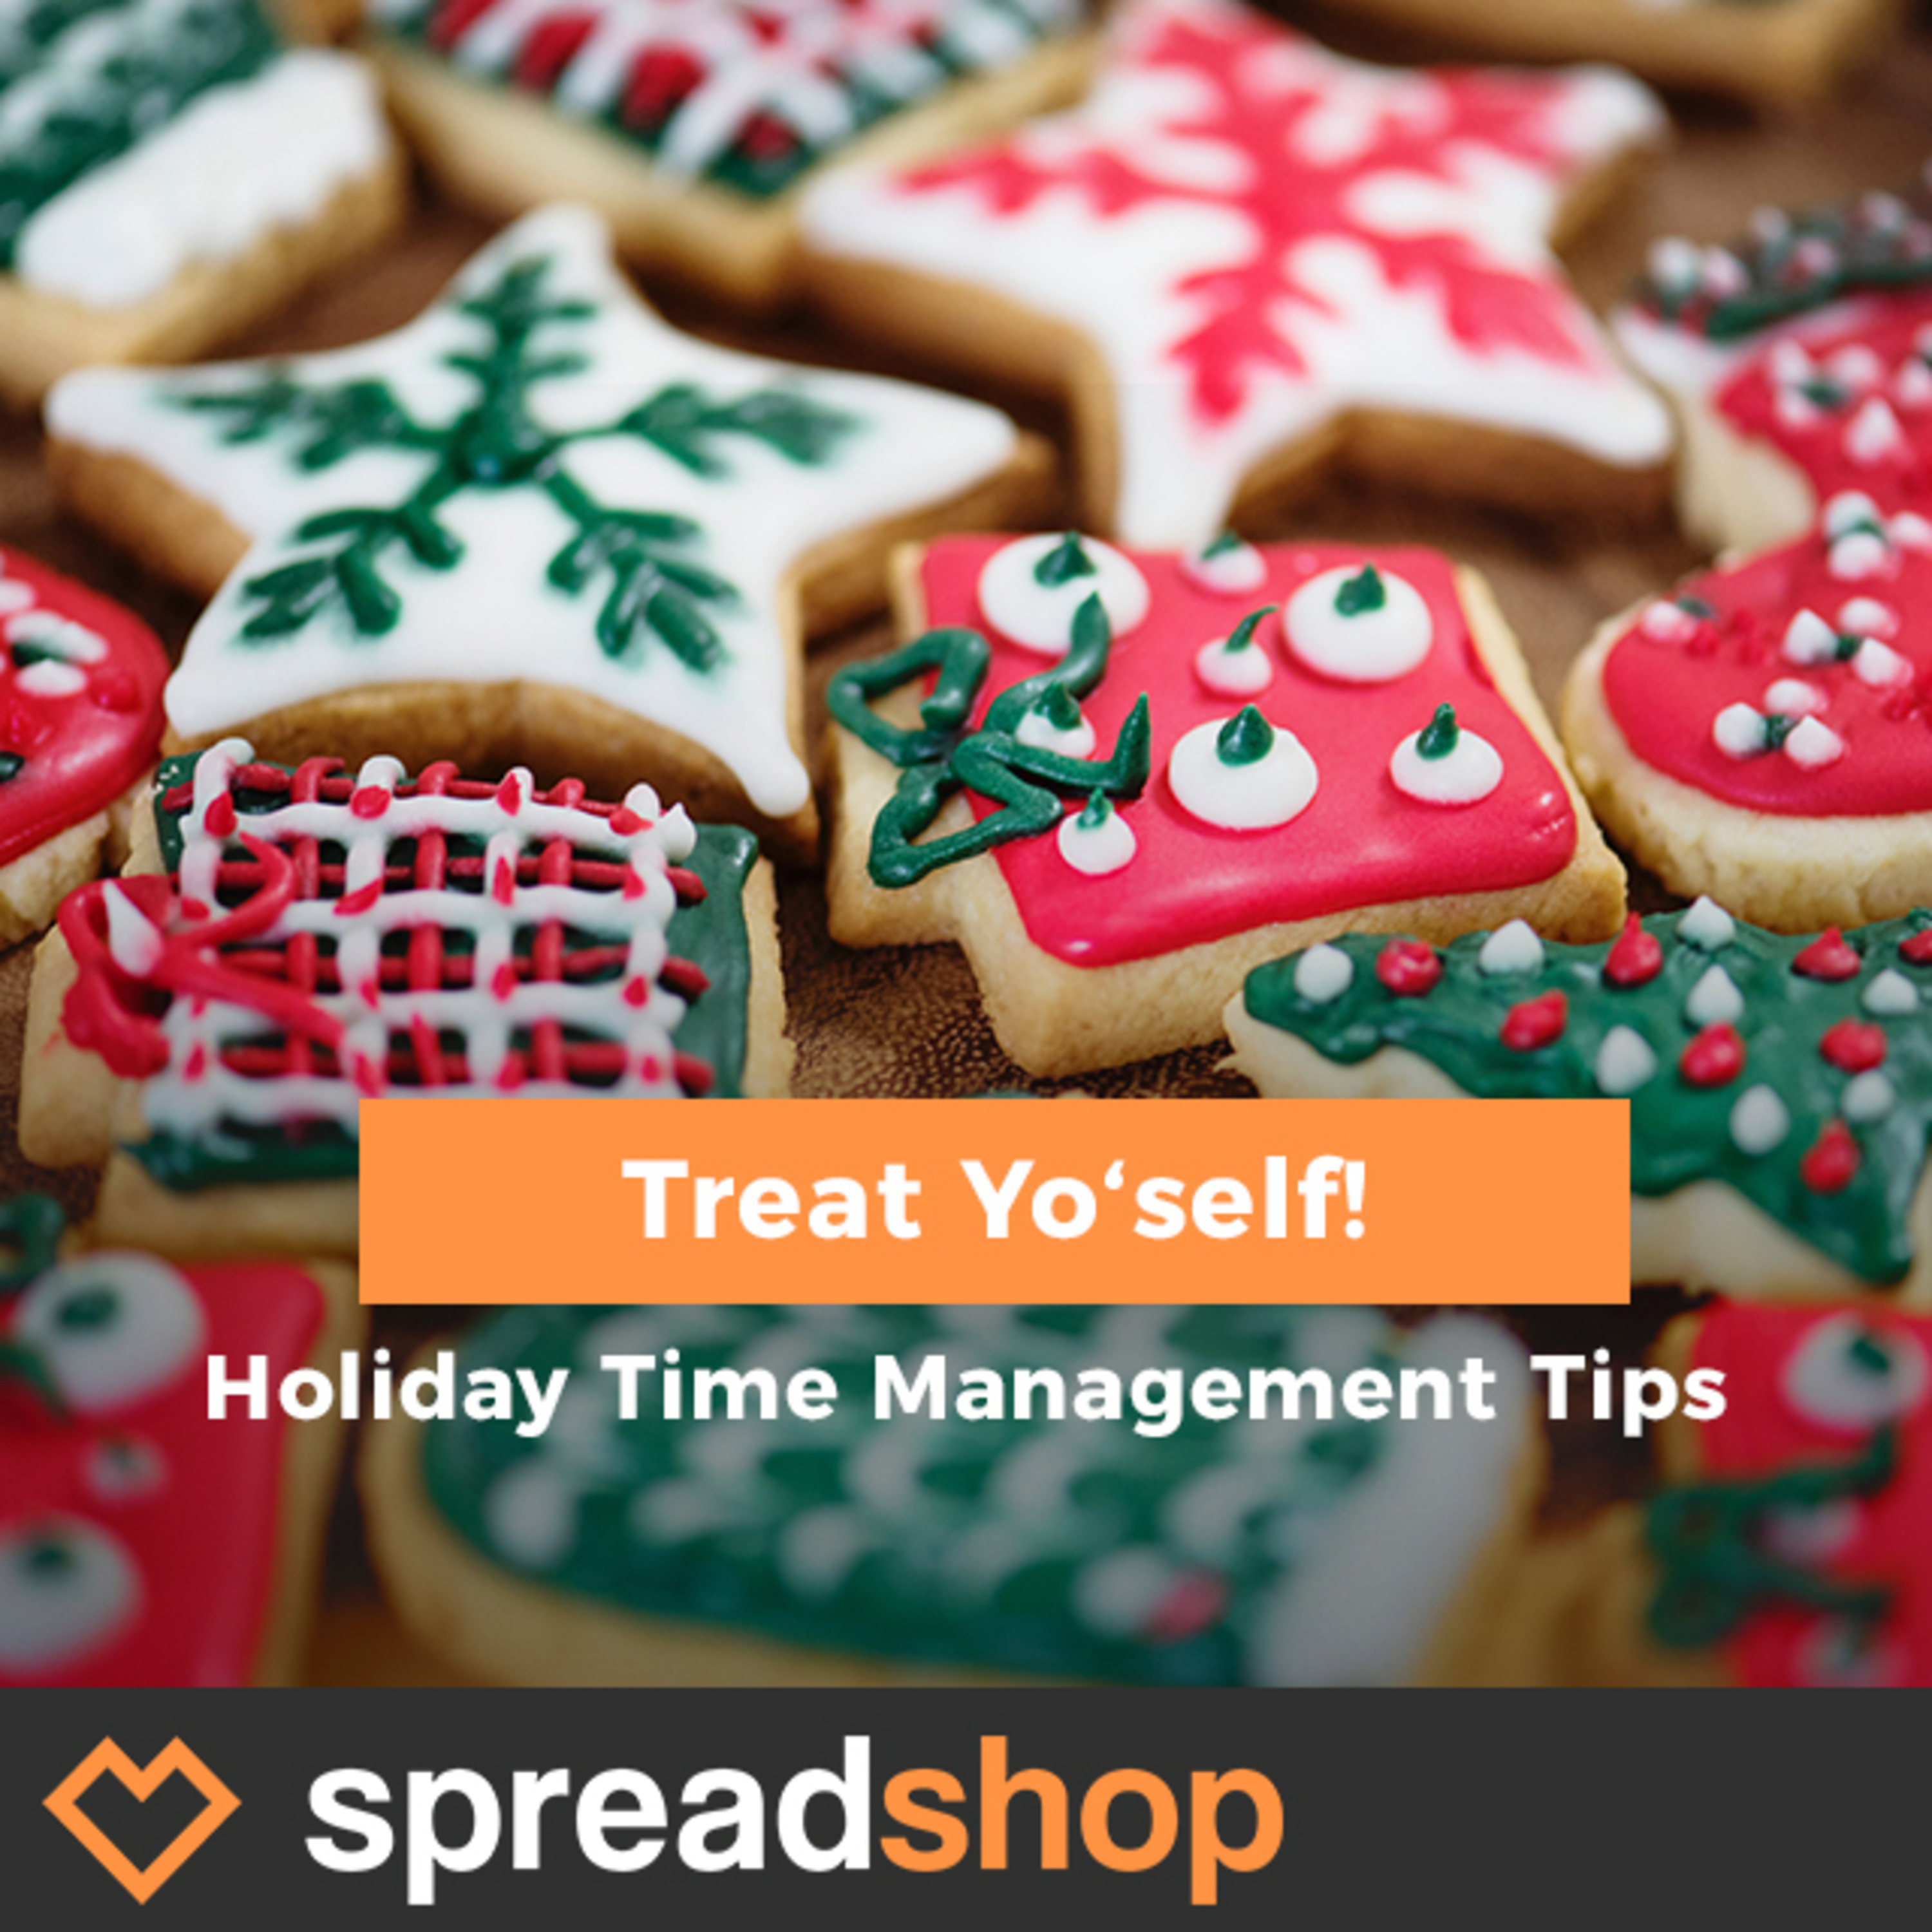 🎁 Holiday Time Management ⏳